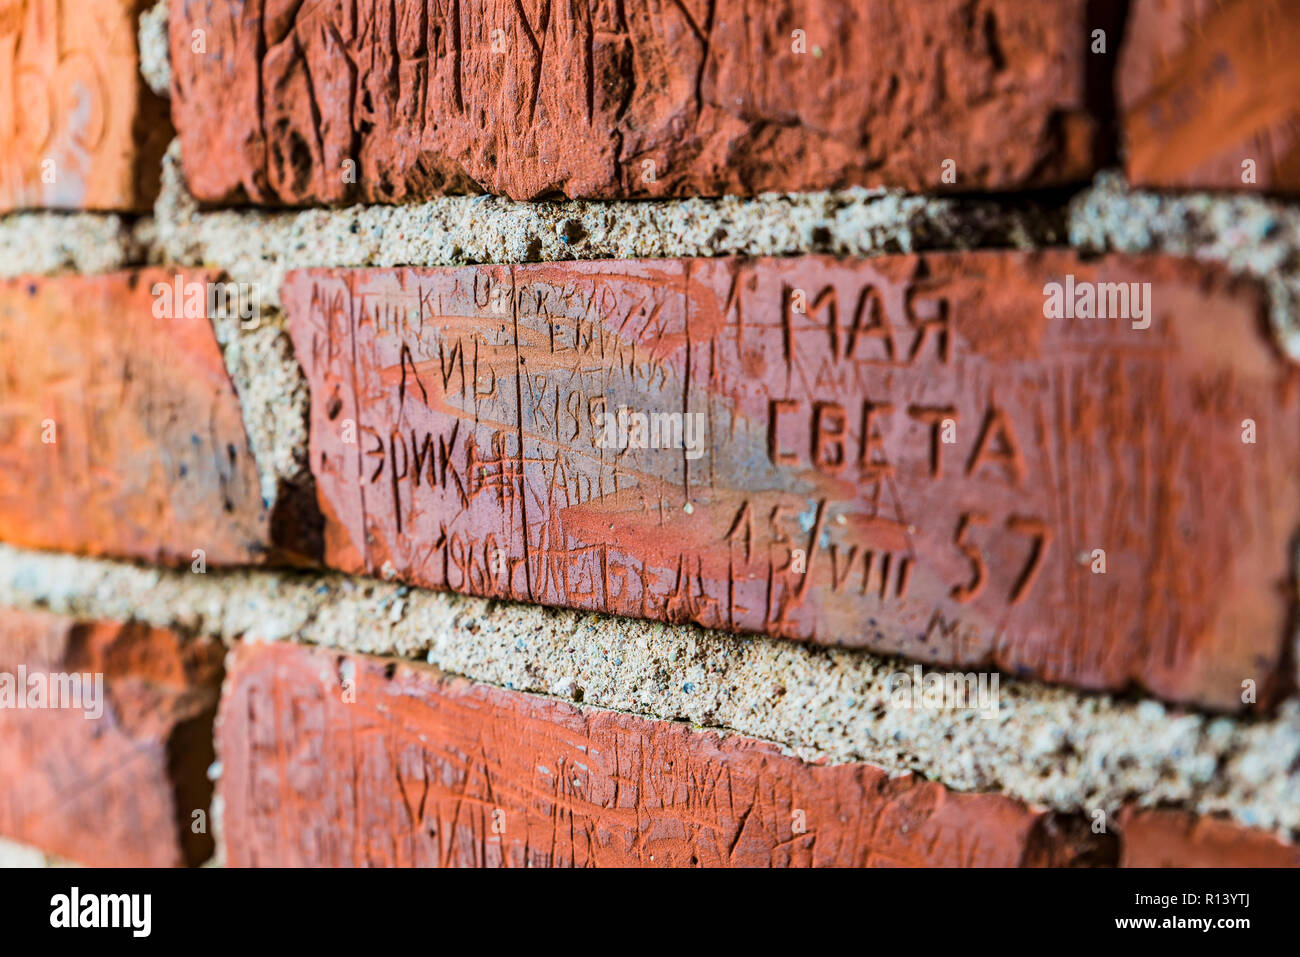 Inscriptions made by Russians in the bricks during the occupation. Castle of Turadia, Turaida Museum Reserve, Sigulda, Latvia, Baltic states, Europe. - Stock Image